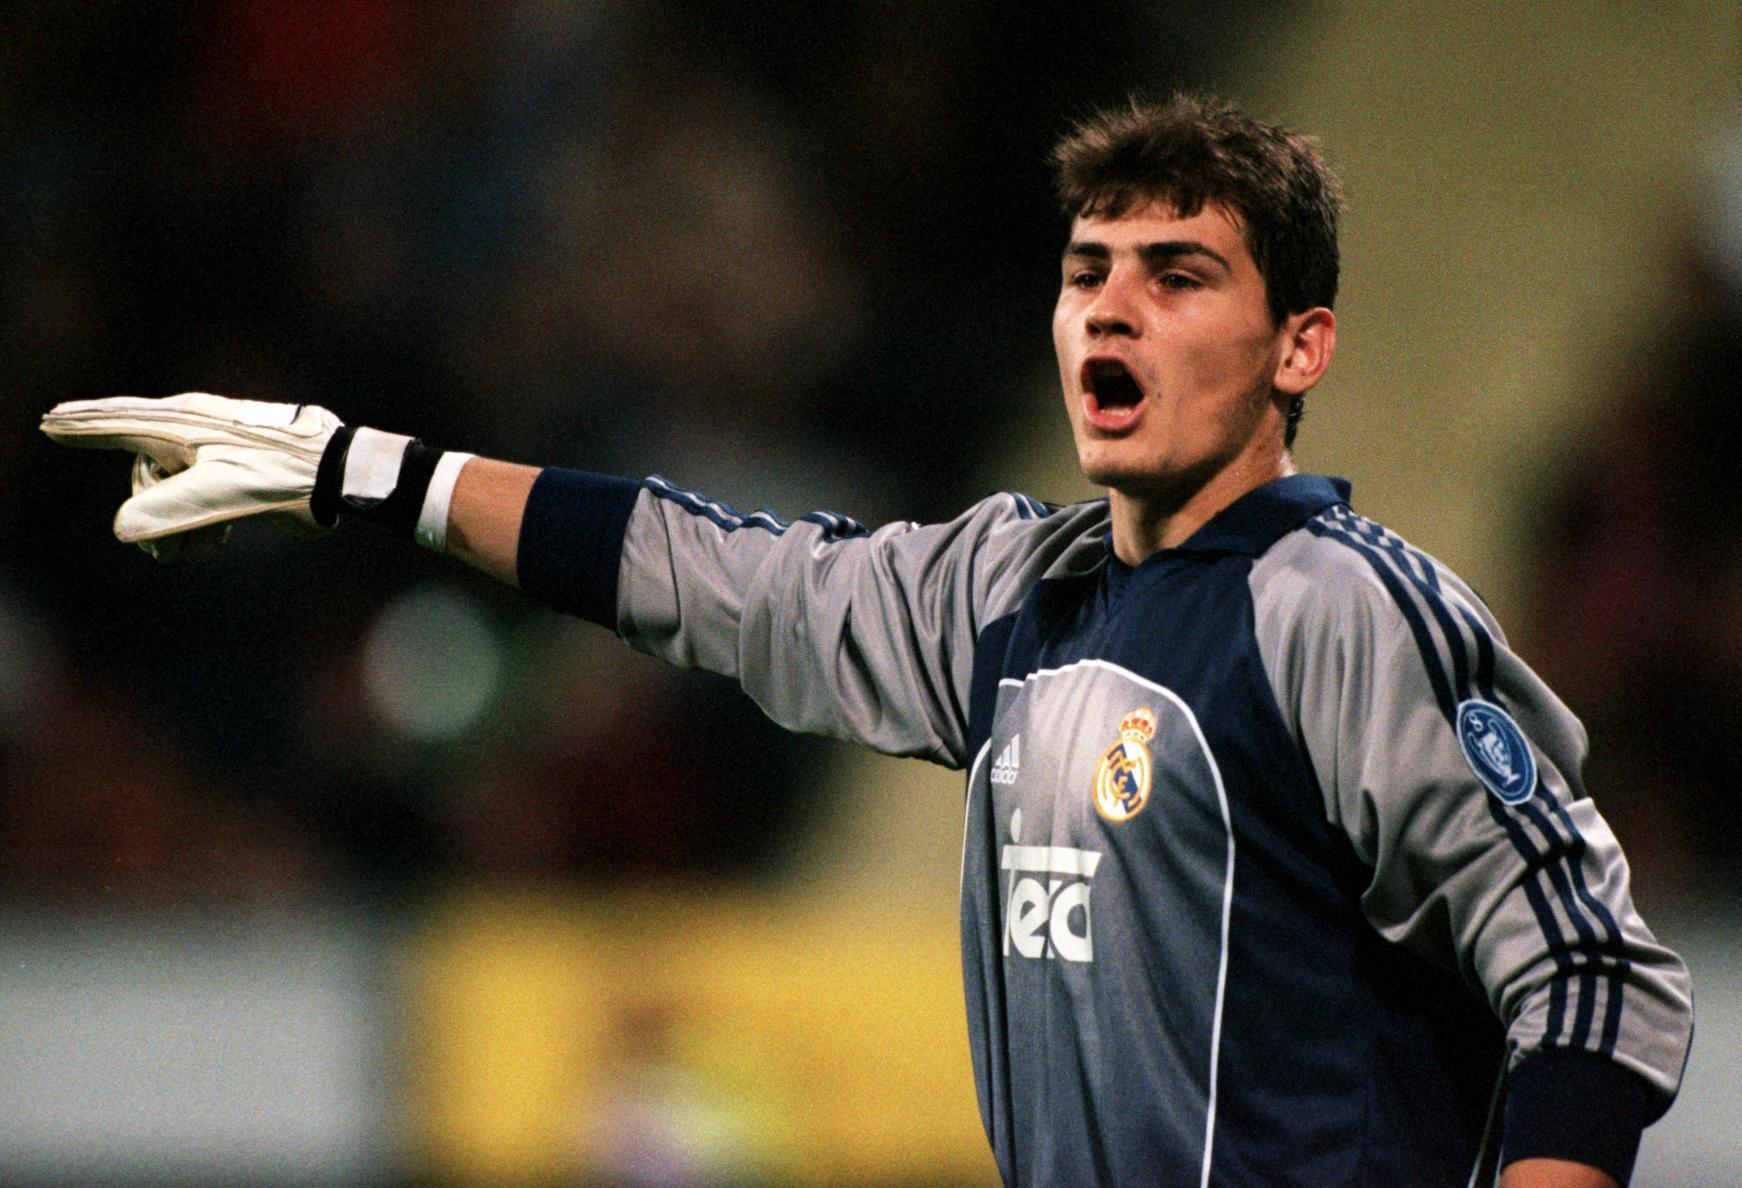 Spanish legend Casillas passes 1000 game mark